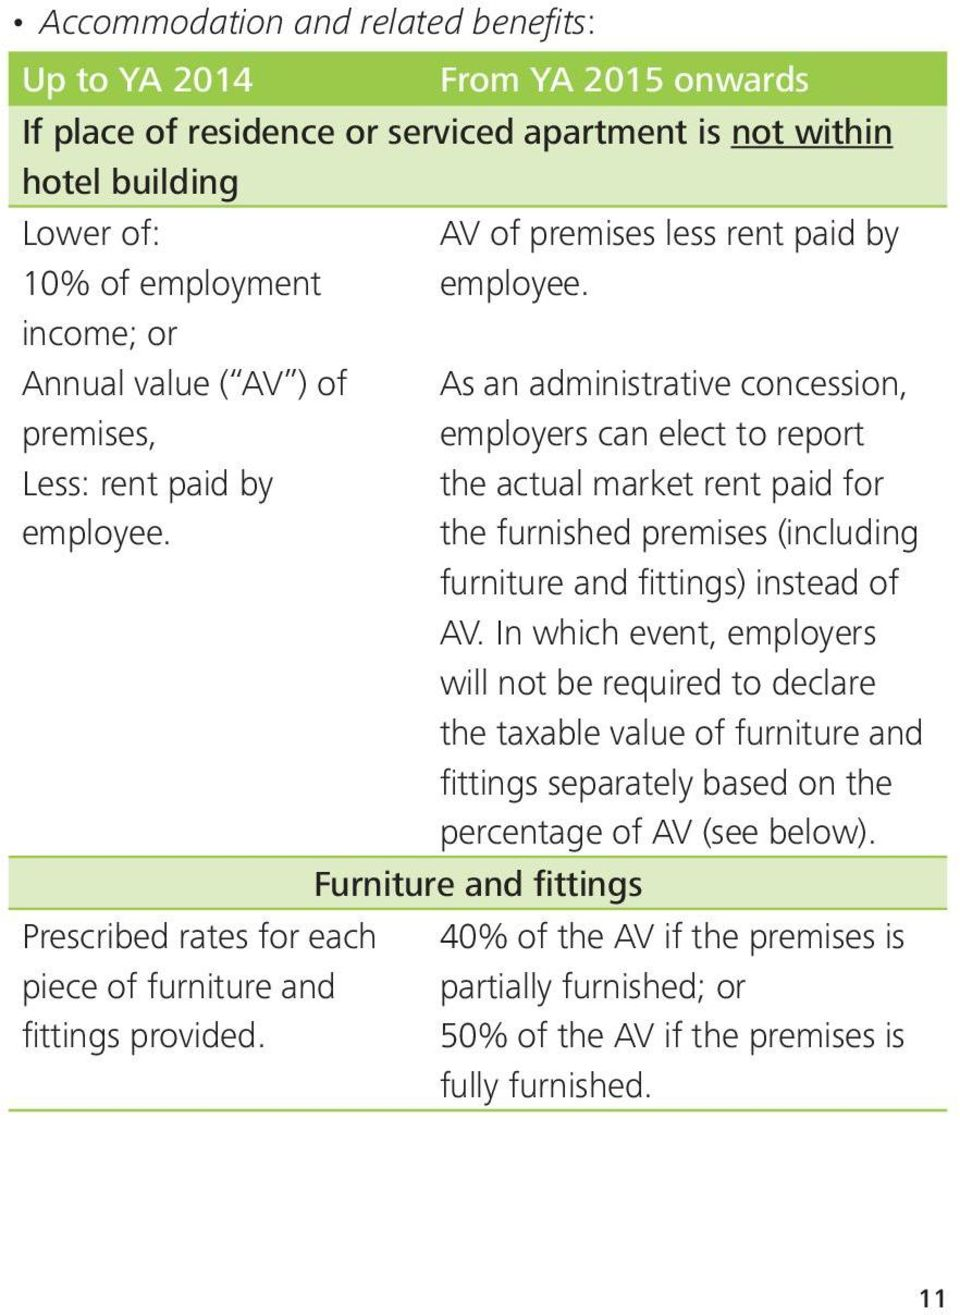 As an administrative concession, employers can elect to report the actual market rent paid for the furnished premises (including furniture and fittings) instead of AV.